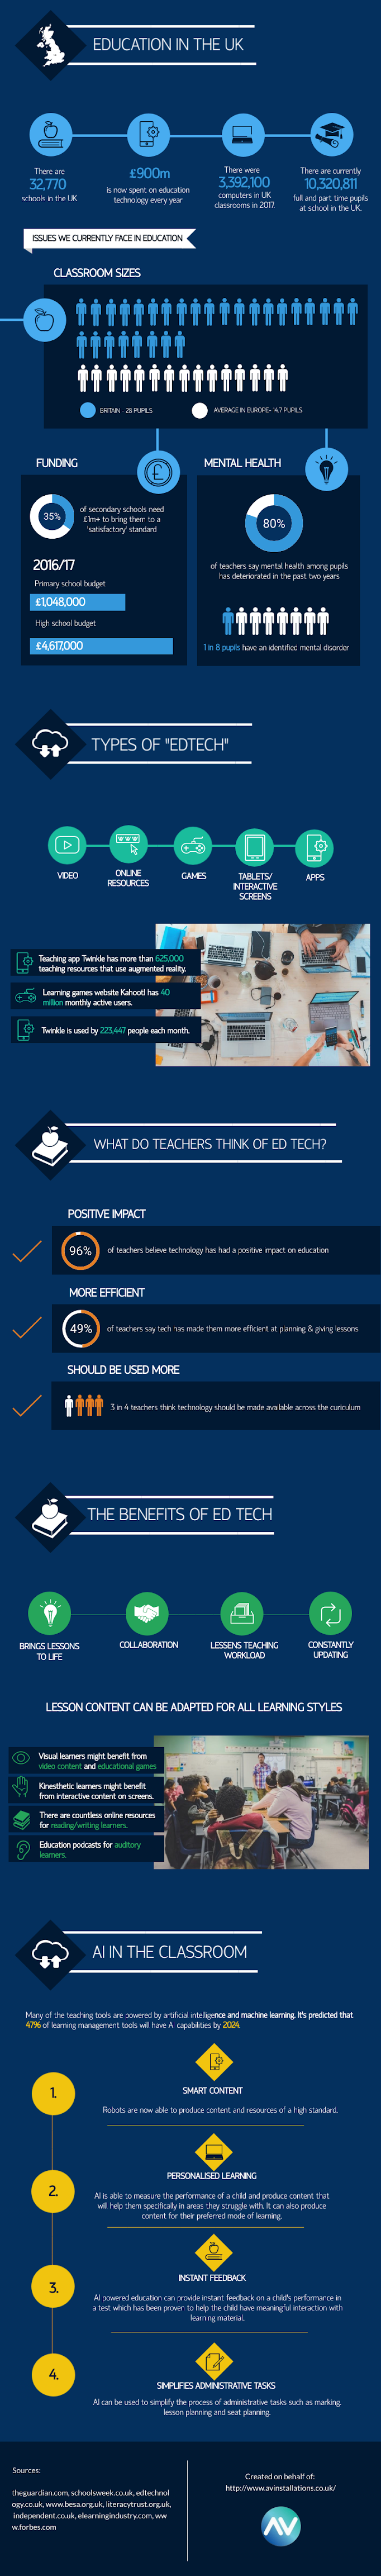 Education Technology: How Technology is Changing Teaching #infographic